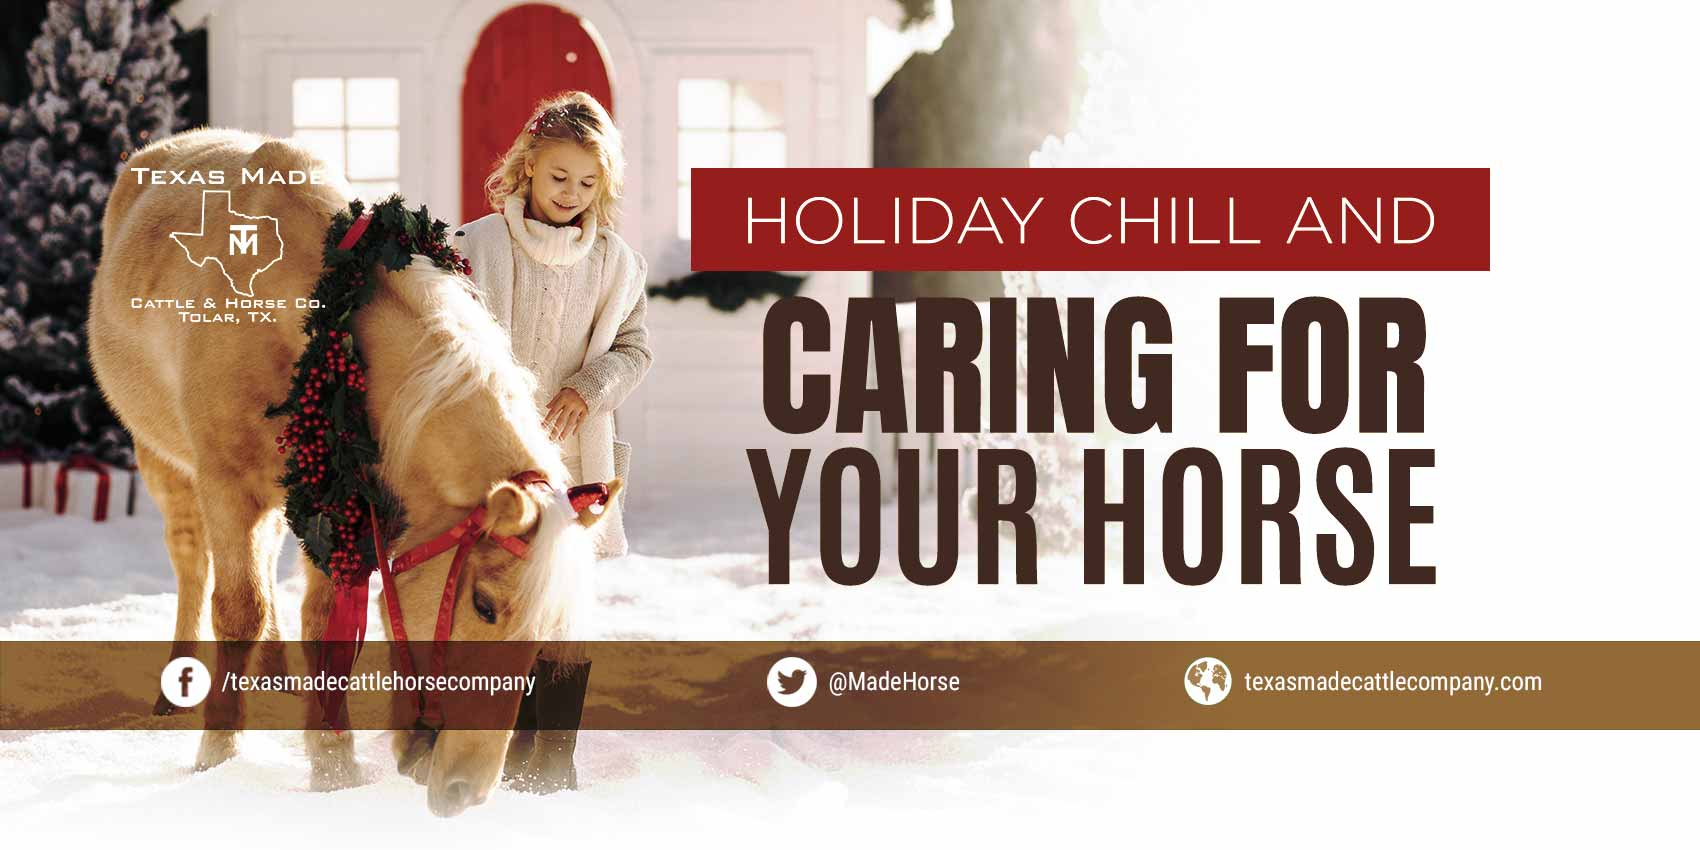 Holiday Chill and Caring For Your Horse